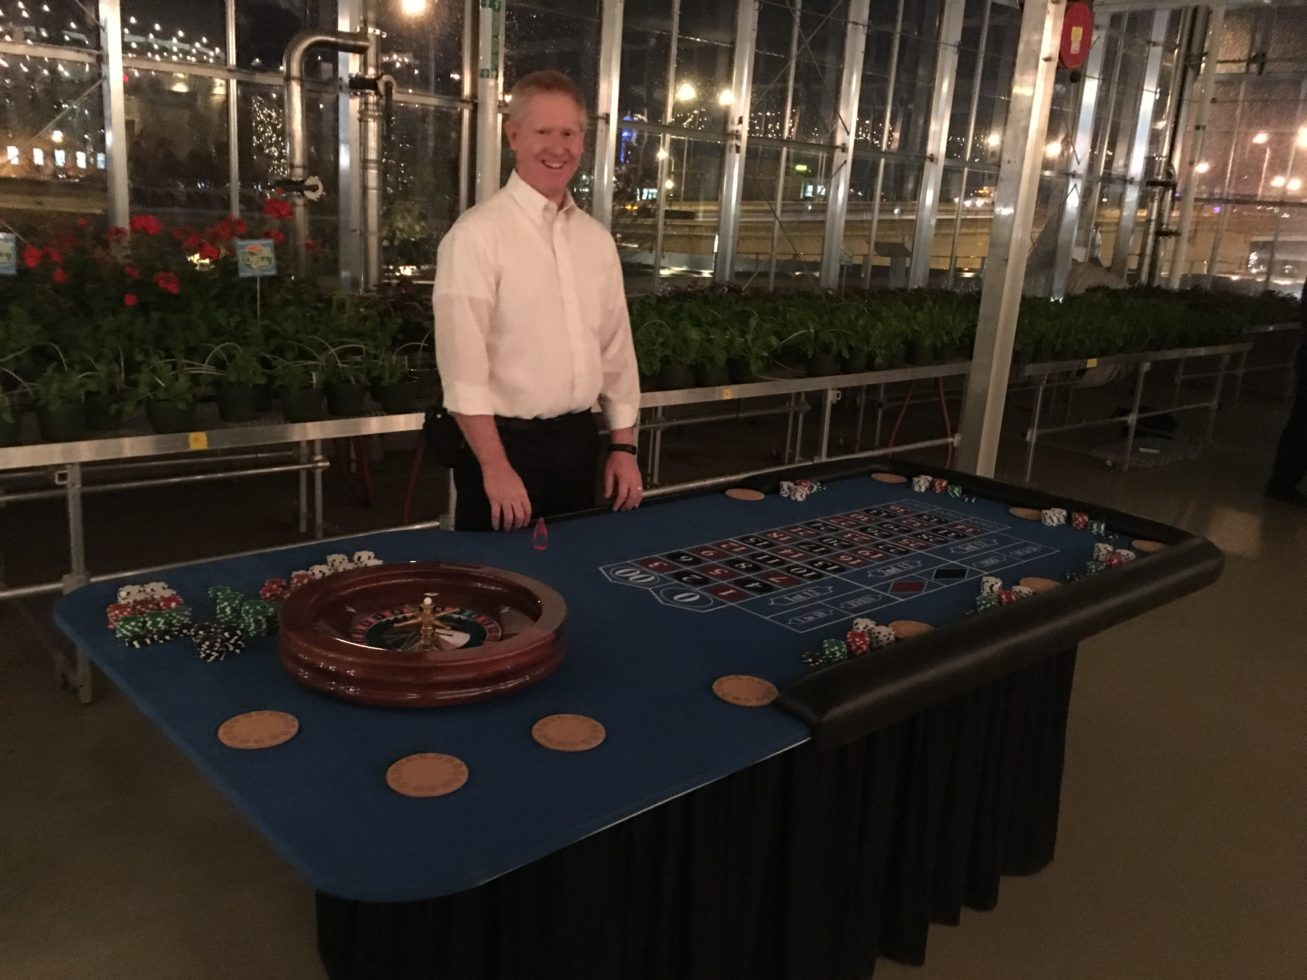 Casino dealer standing behind roulette table